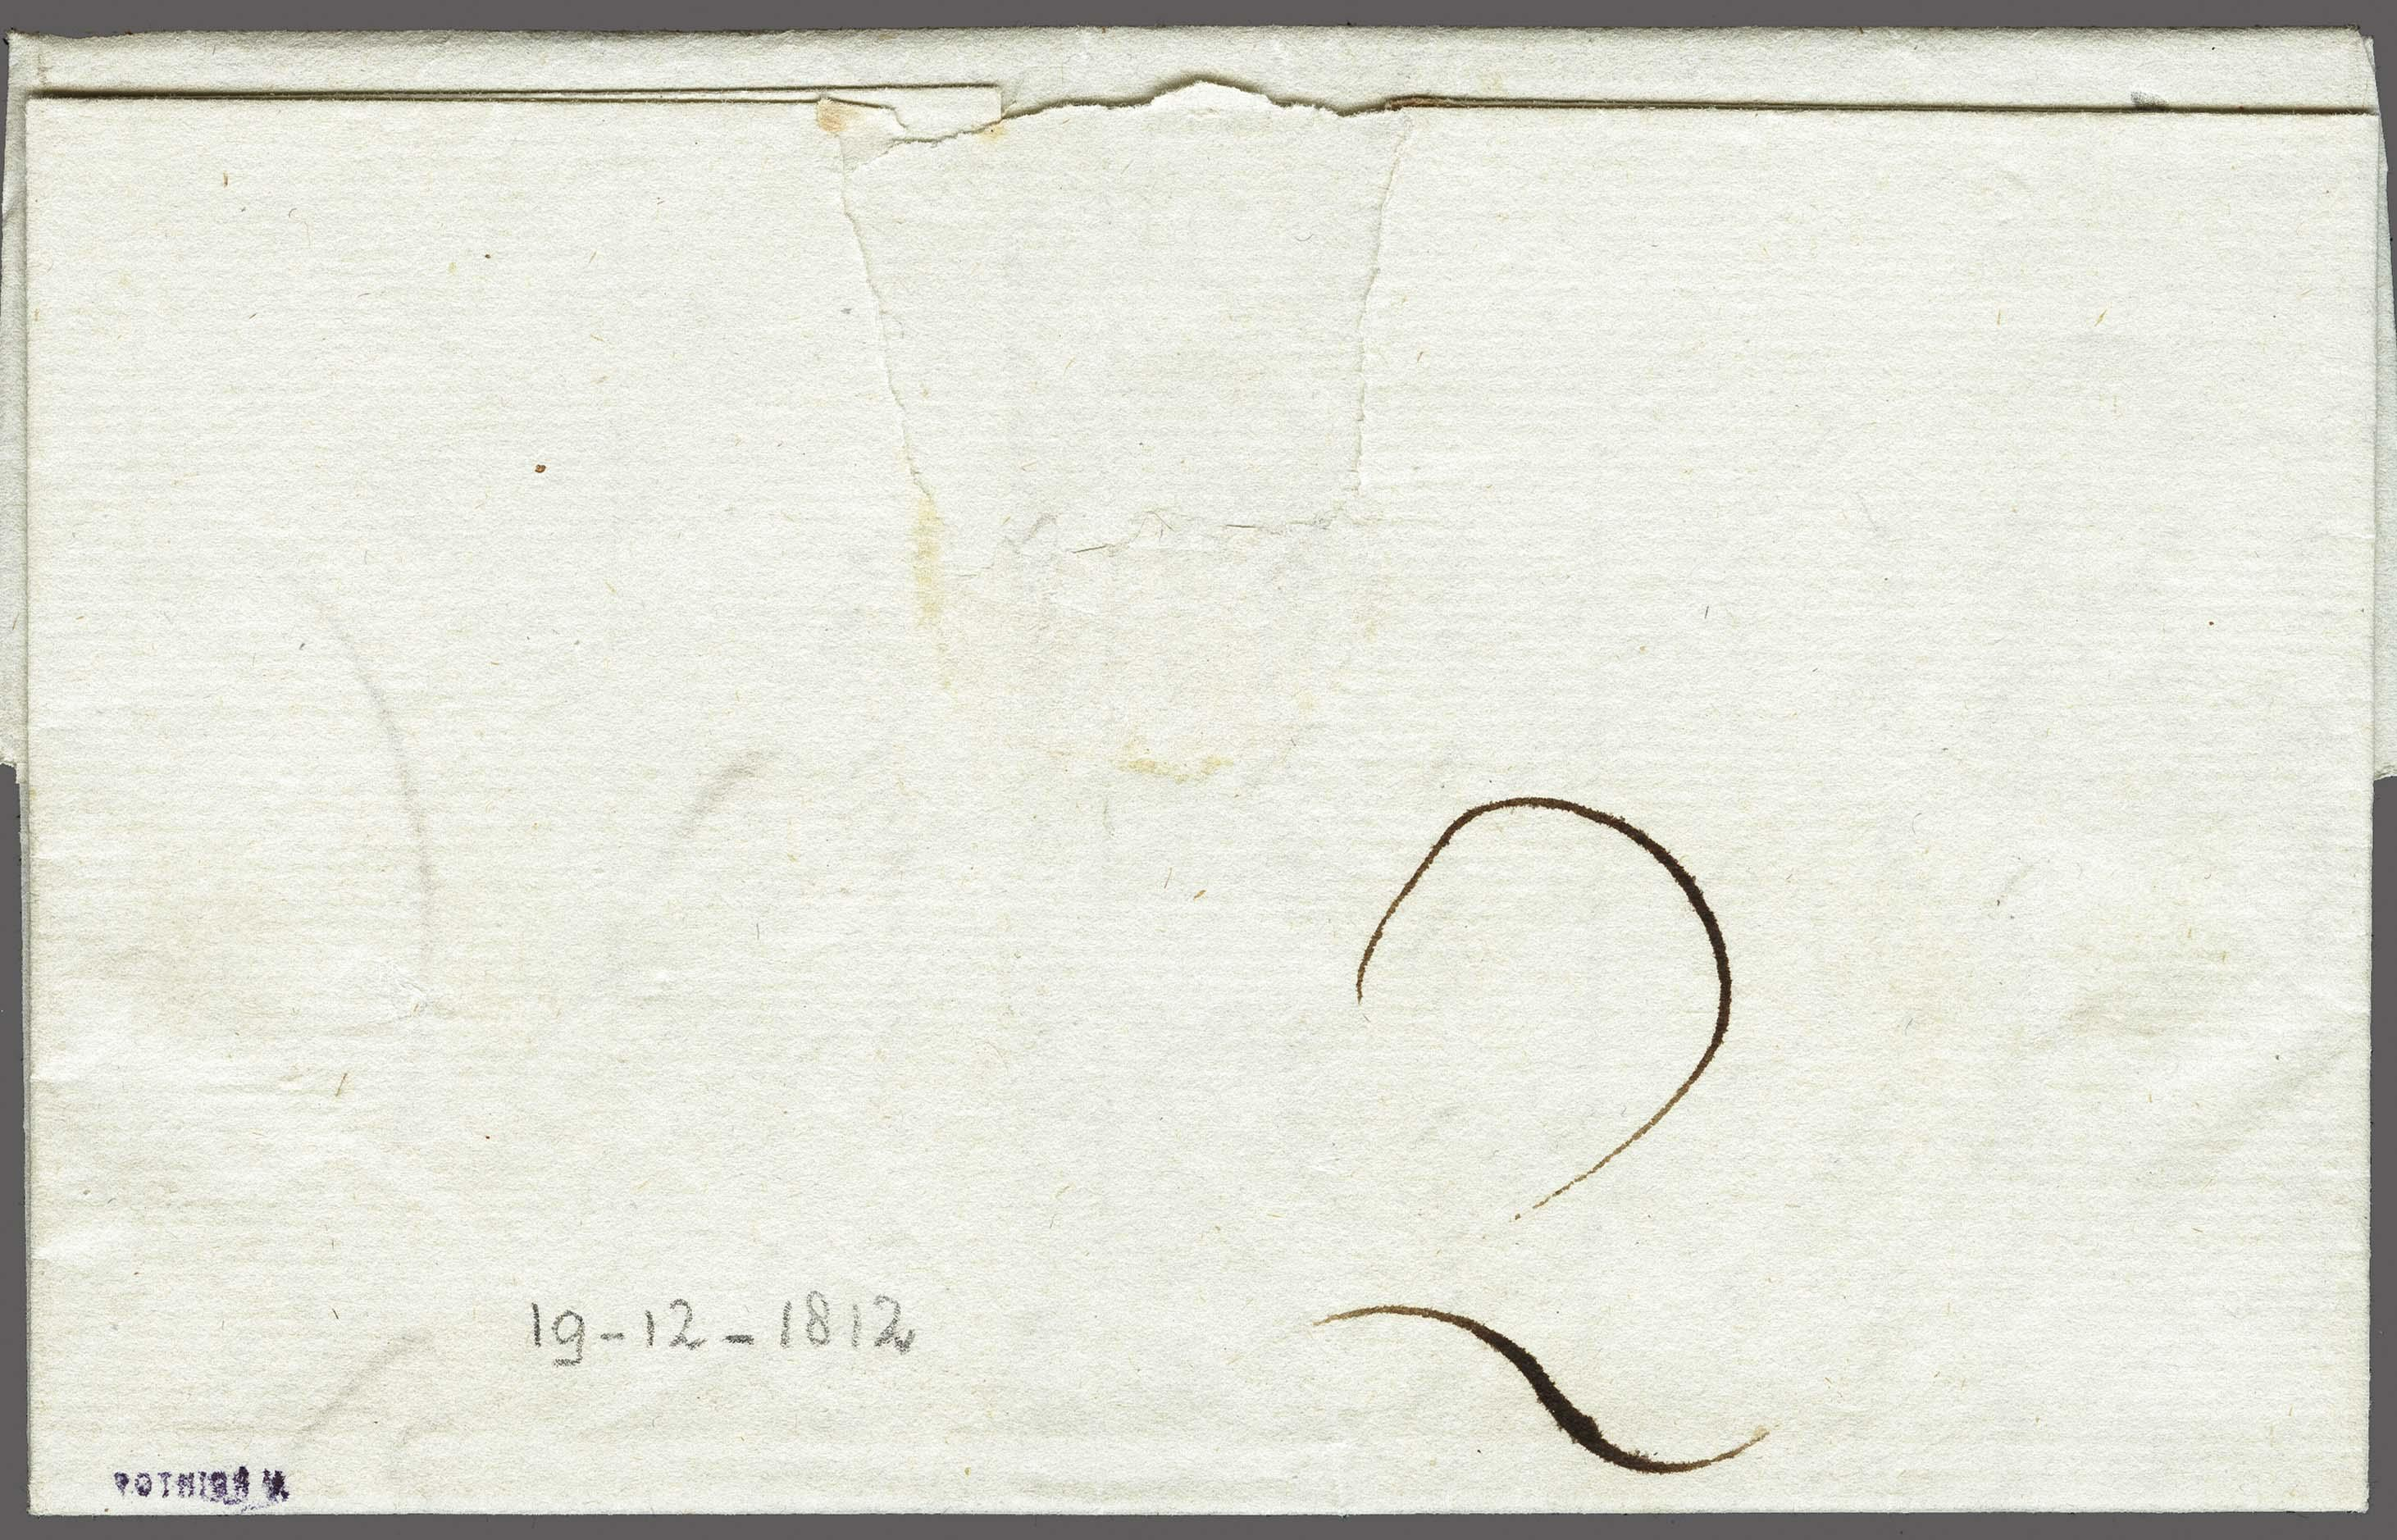 Lot 2341 - Netherlands and former colonies Netherlands -  Corinphila Veilingen Auction 250-253 - Day 3 - Netherlands and former colonies - Single lots & Picture postcards